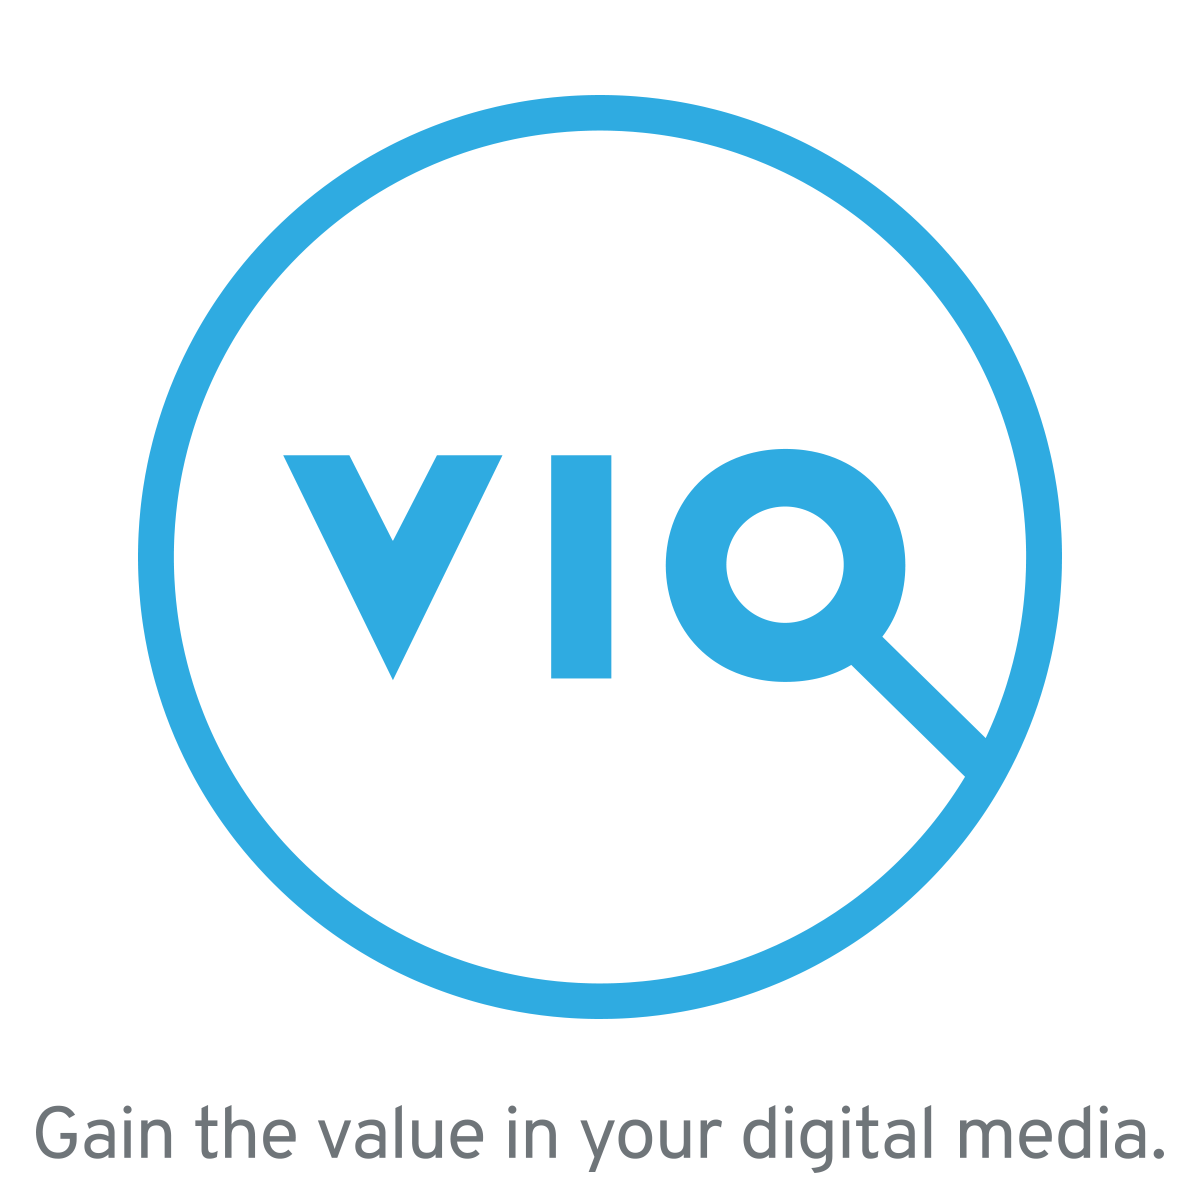 VIQ Announces Market Leading End-to-End Cloud-Based Workflow Solution for Insurance Industry